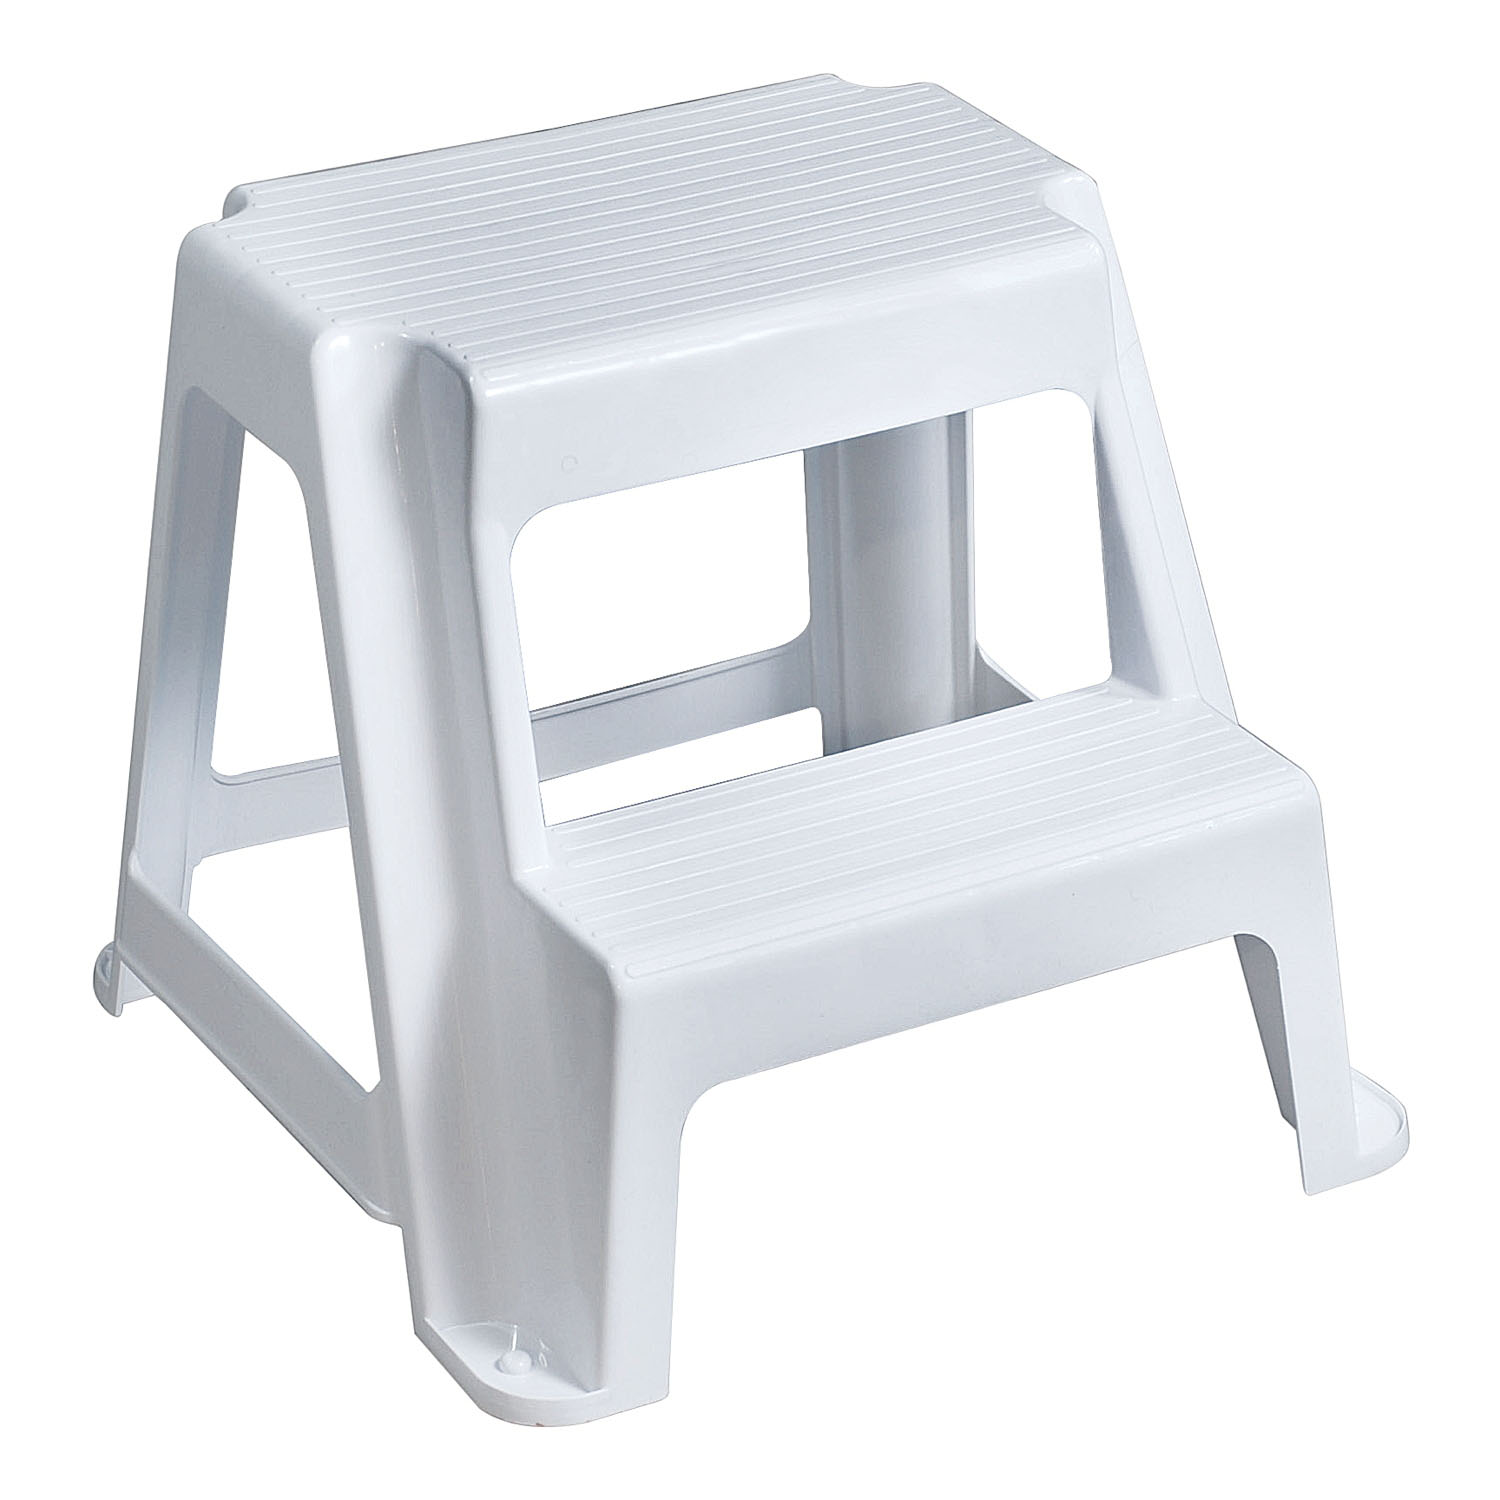 Groovy Gracious Living 2 Step Stepstool Grand Toy Alphanode Cool Chair Designs And Ideas Alphanodeonline